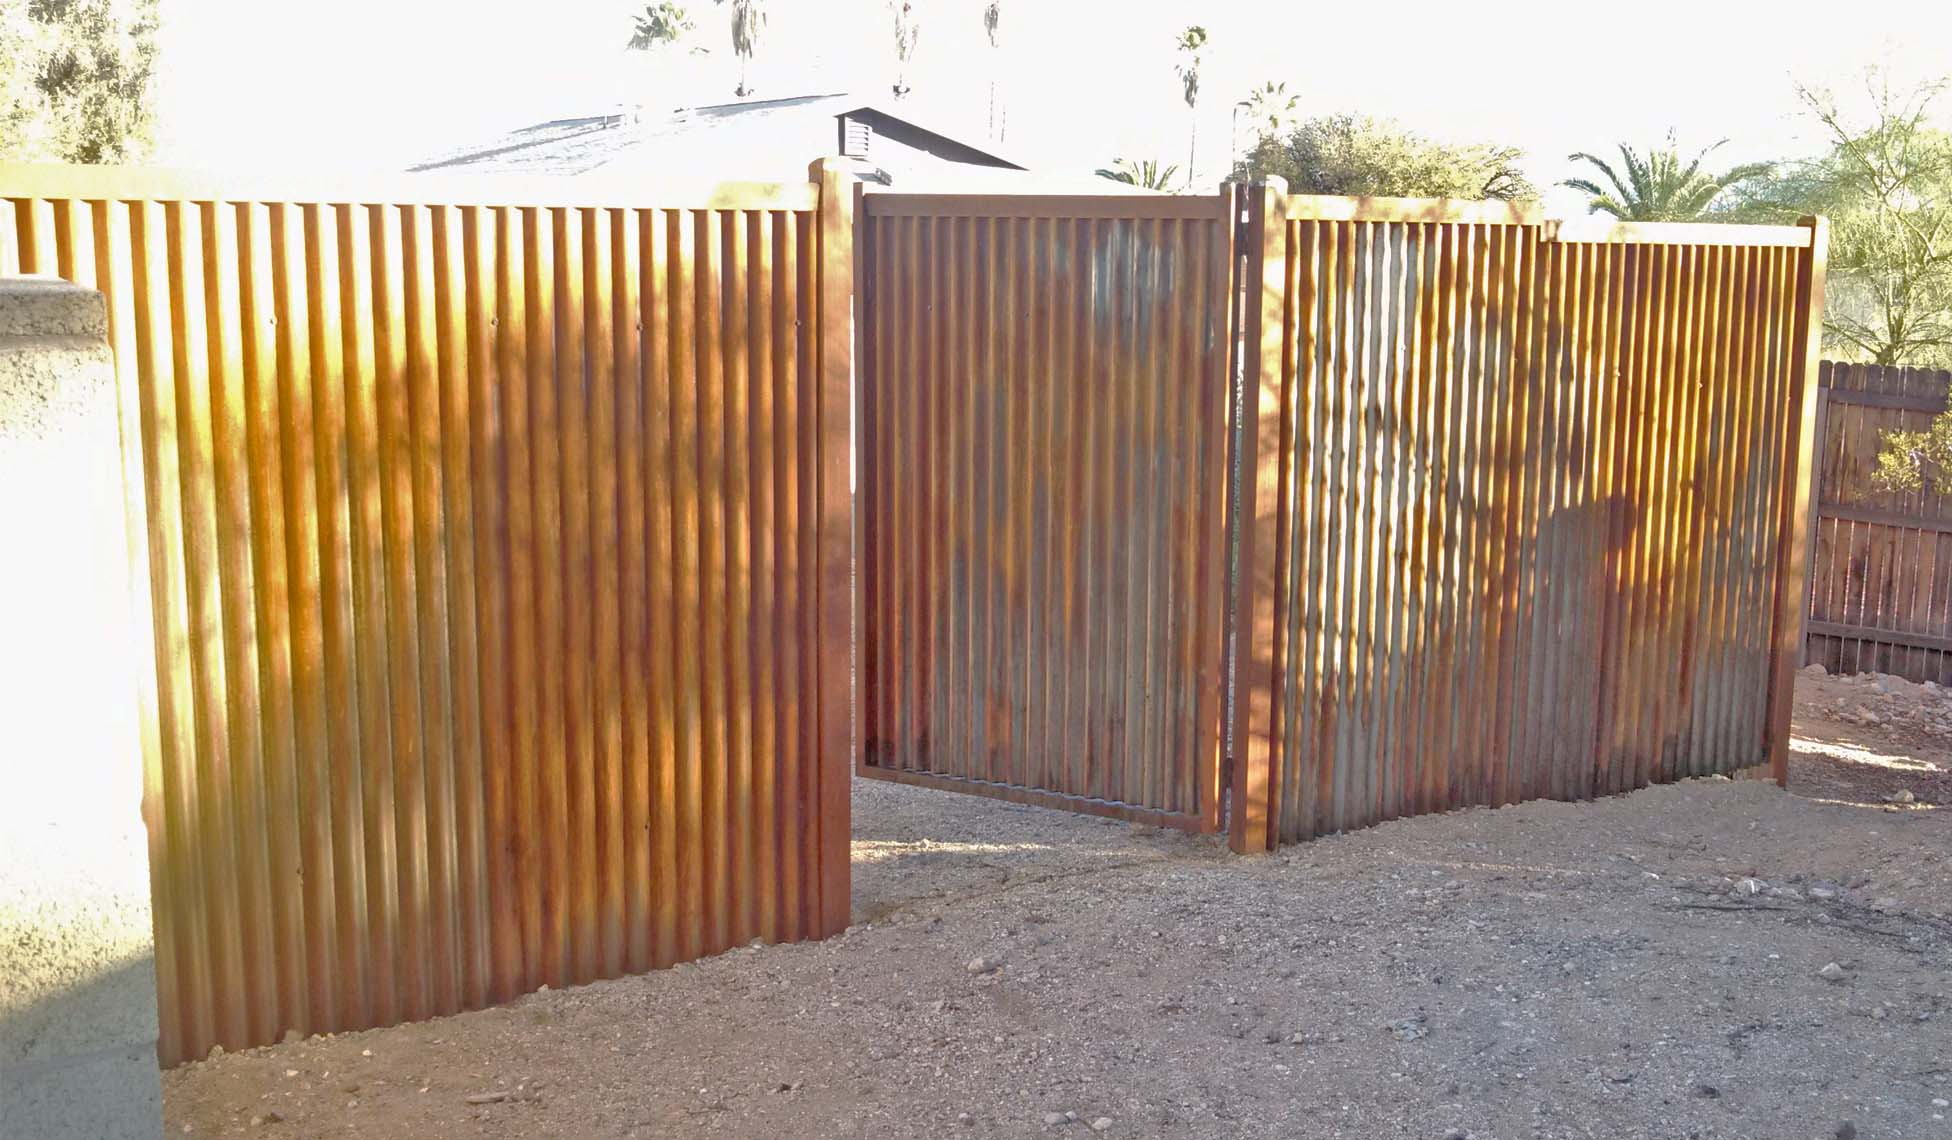 Corrugated Steel Gate | Signature Ironworks | Affordable Fence & Gates | Rusty | Natural Rust